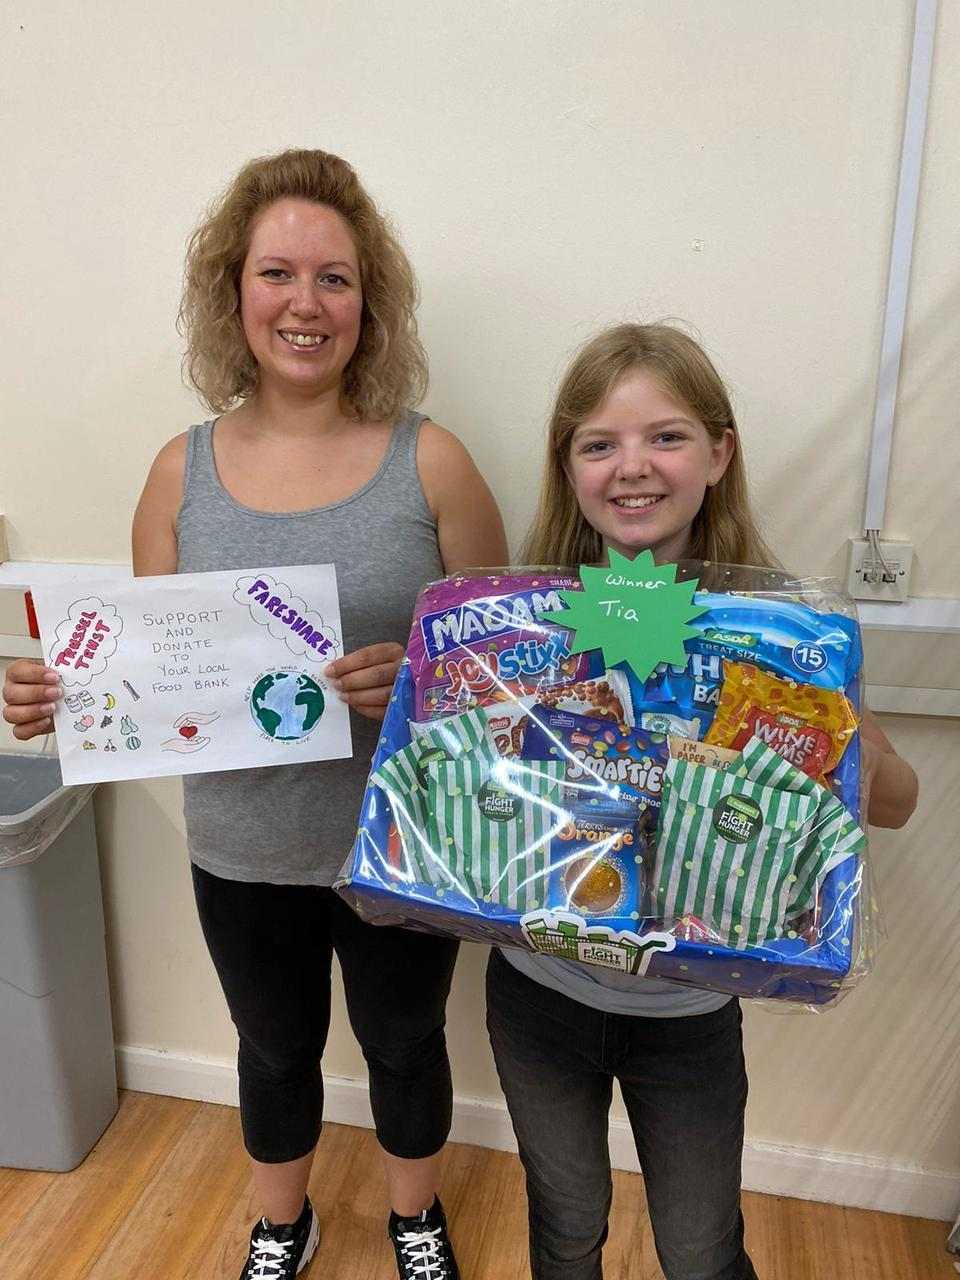 Poster competition winners | Asda Fareham